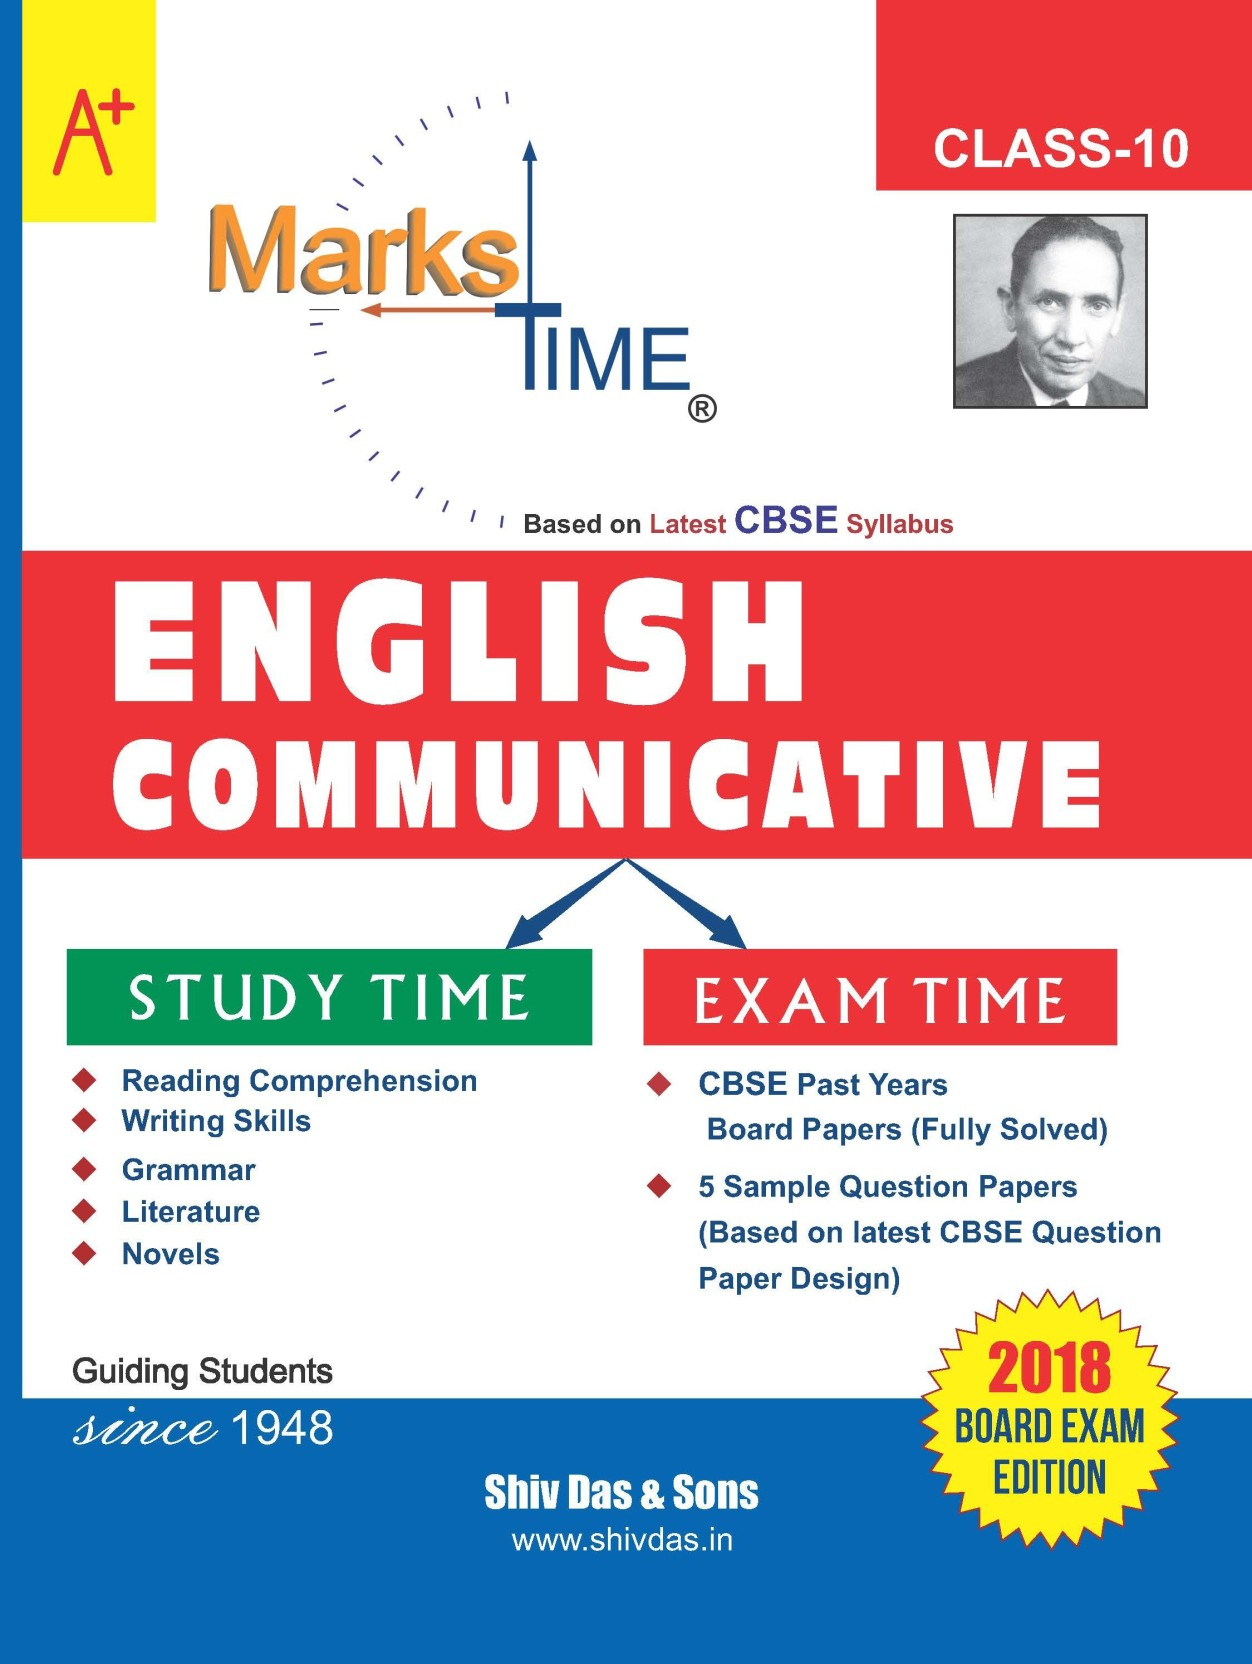 ... Guide For Class 10 English Communicative. ADD TO CART